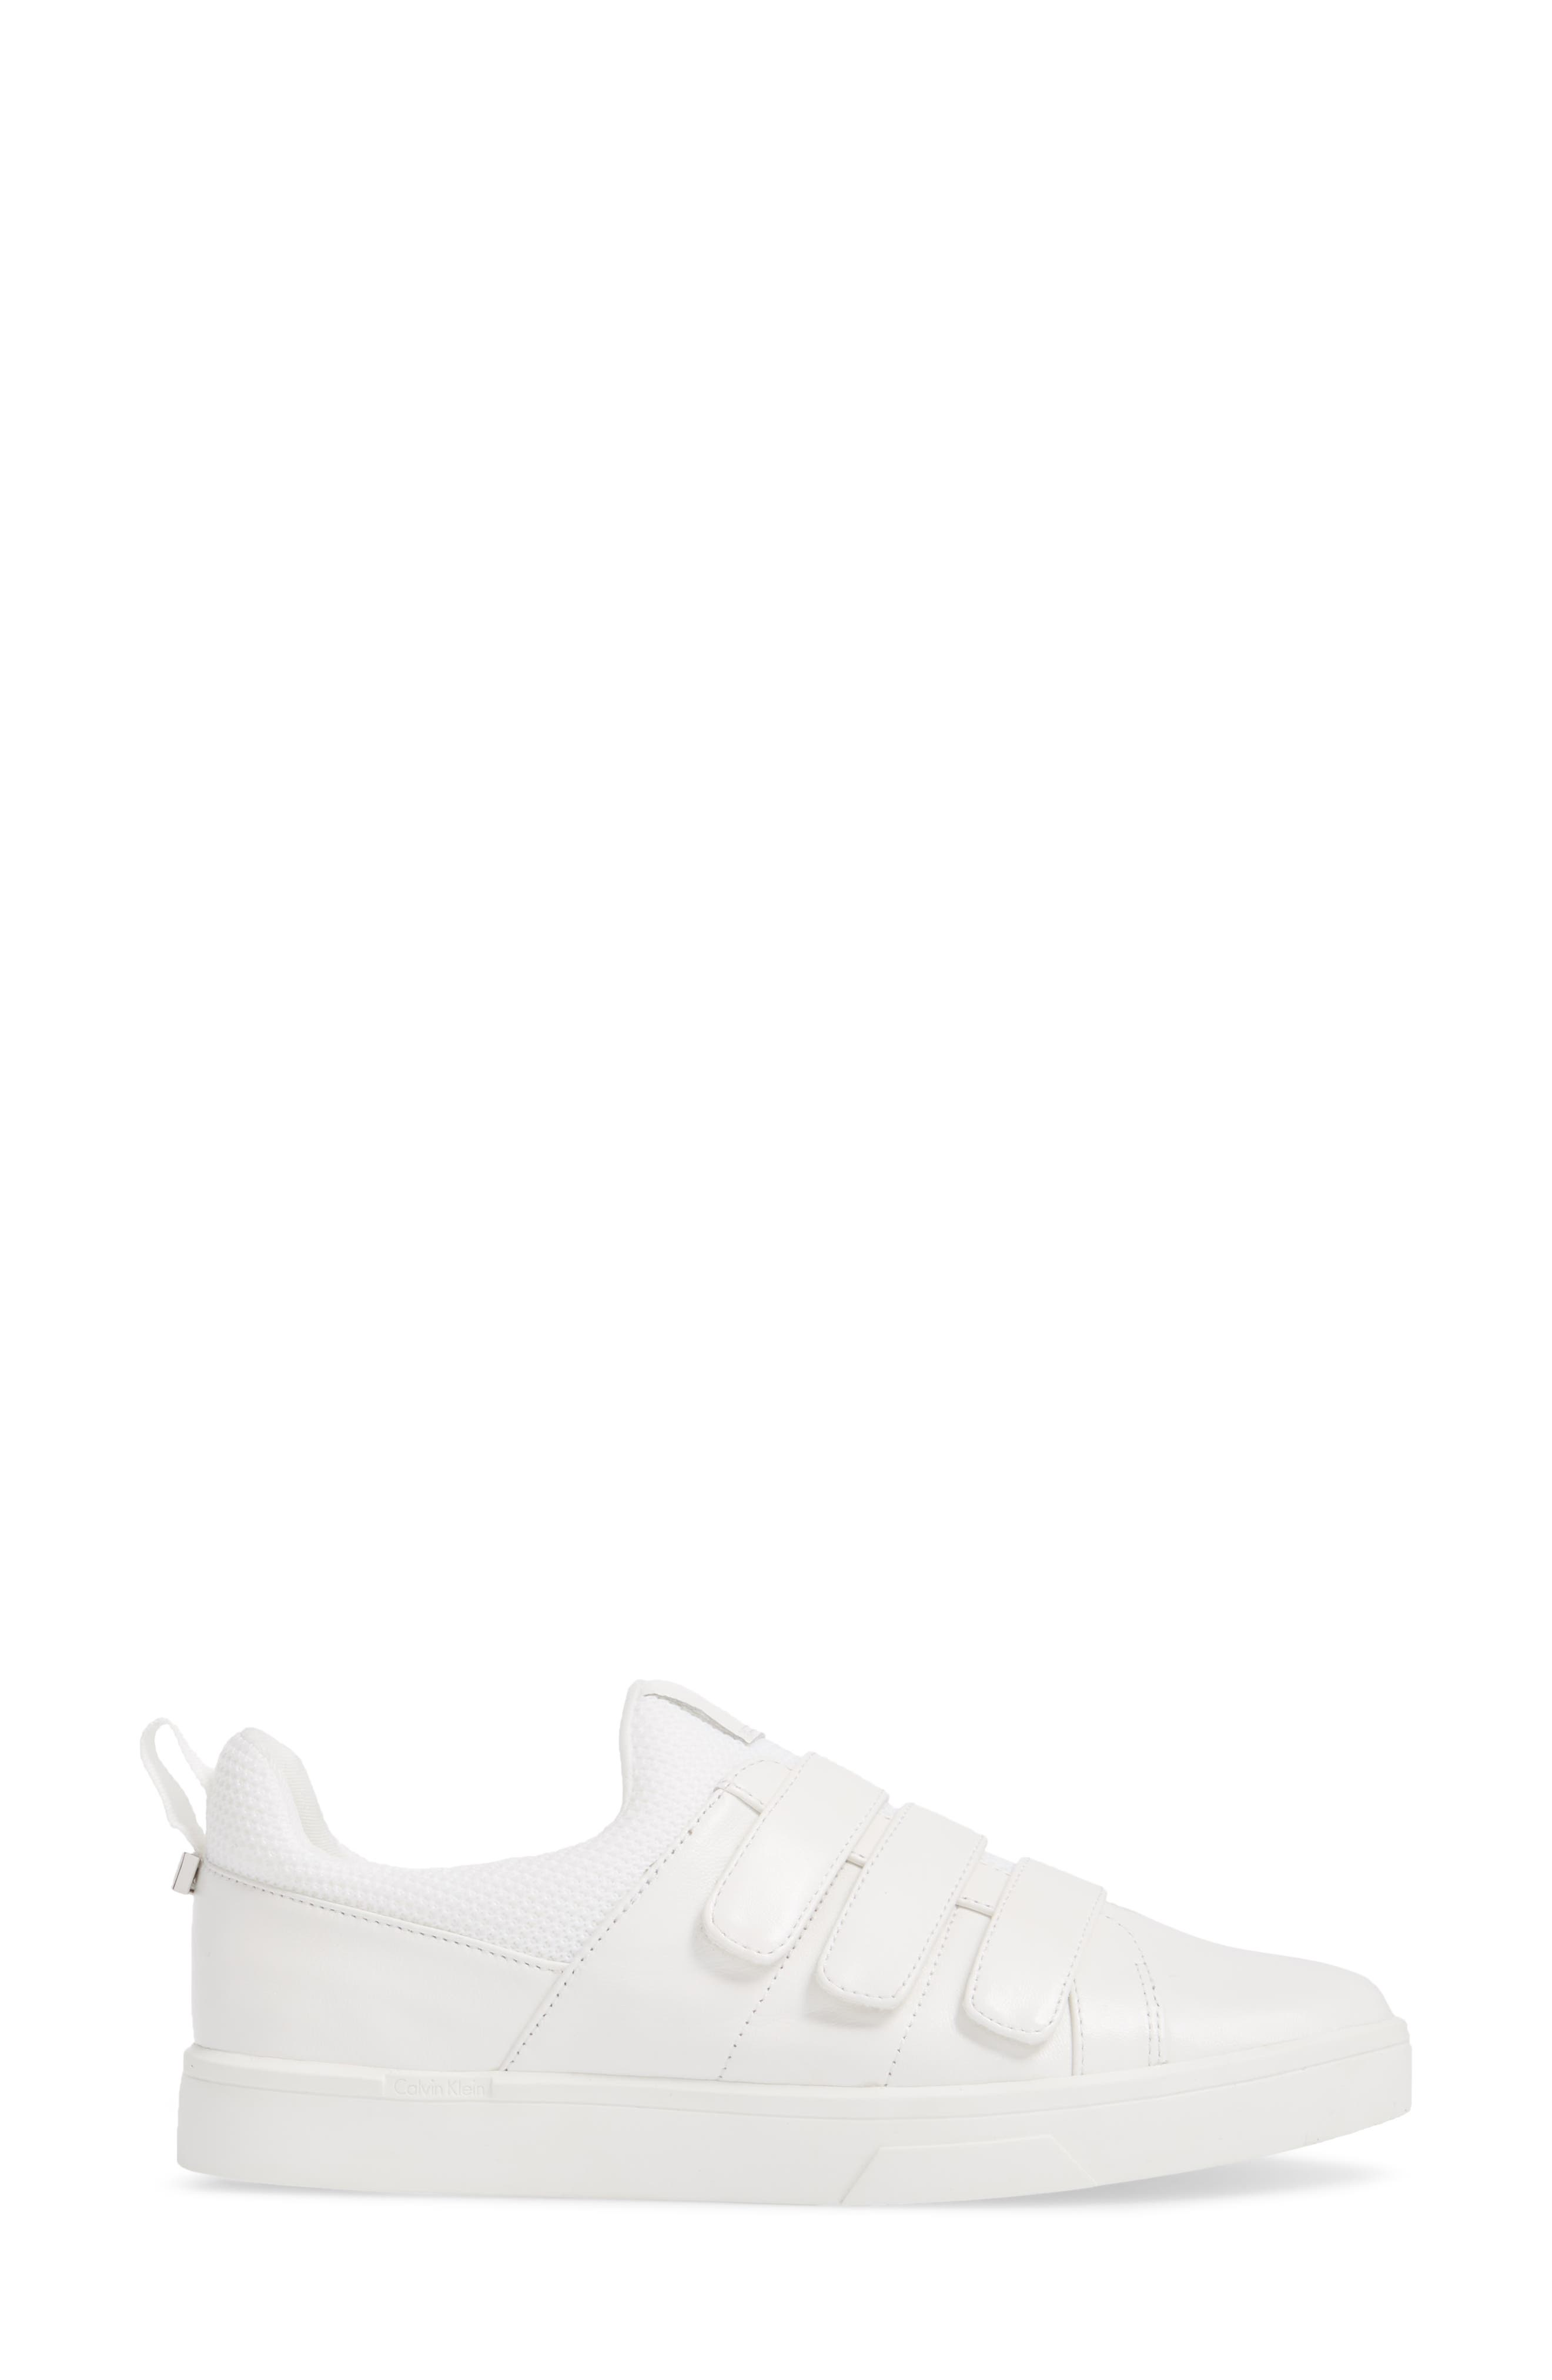 Irah Sneaker,                             Alternate thumbnail 3, color,                             WHITE LEATHER